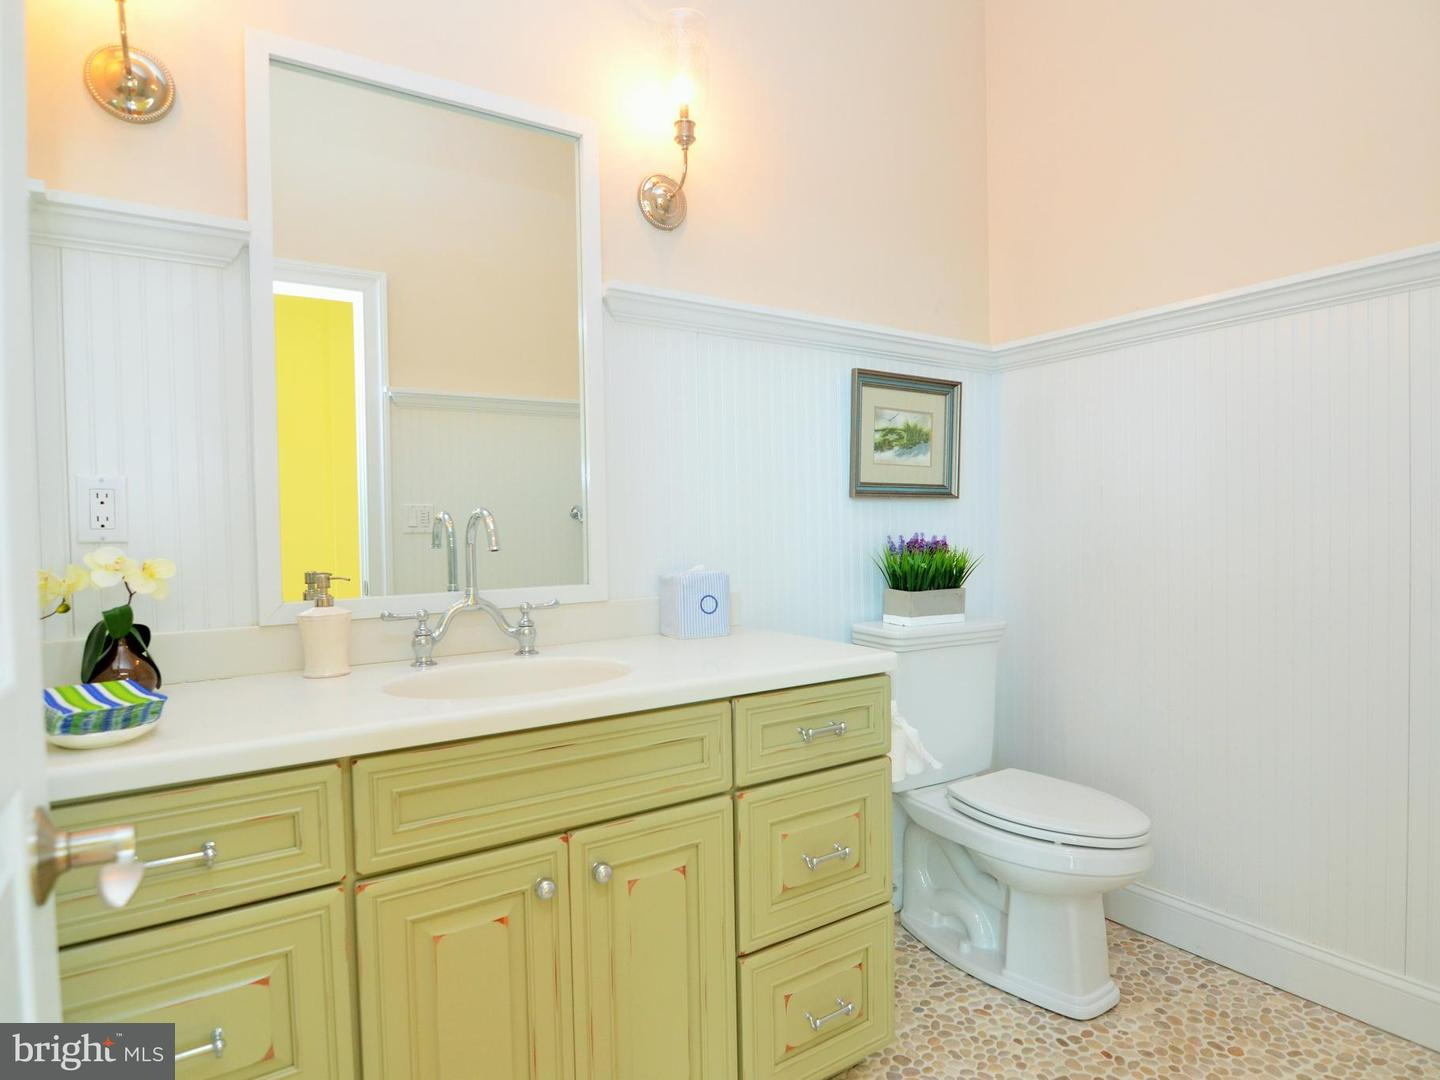 1002293530-300500811483-2018-09-25-15-08-25 31 Hall Ave | Rehoboth Beach, DE Real Estate For Sale | MLS# 1002293530  - 1st Choice Properties